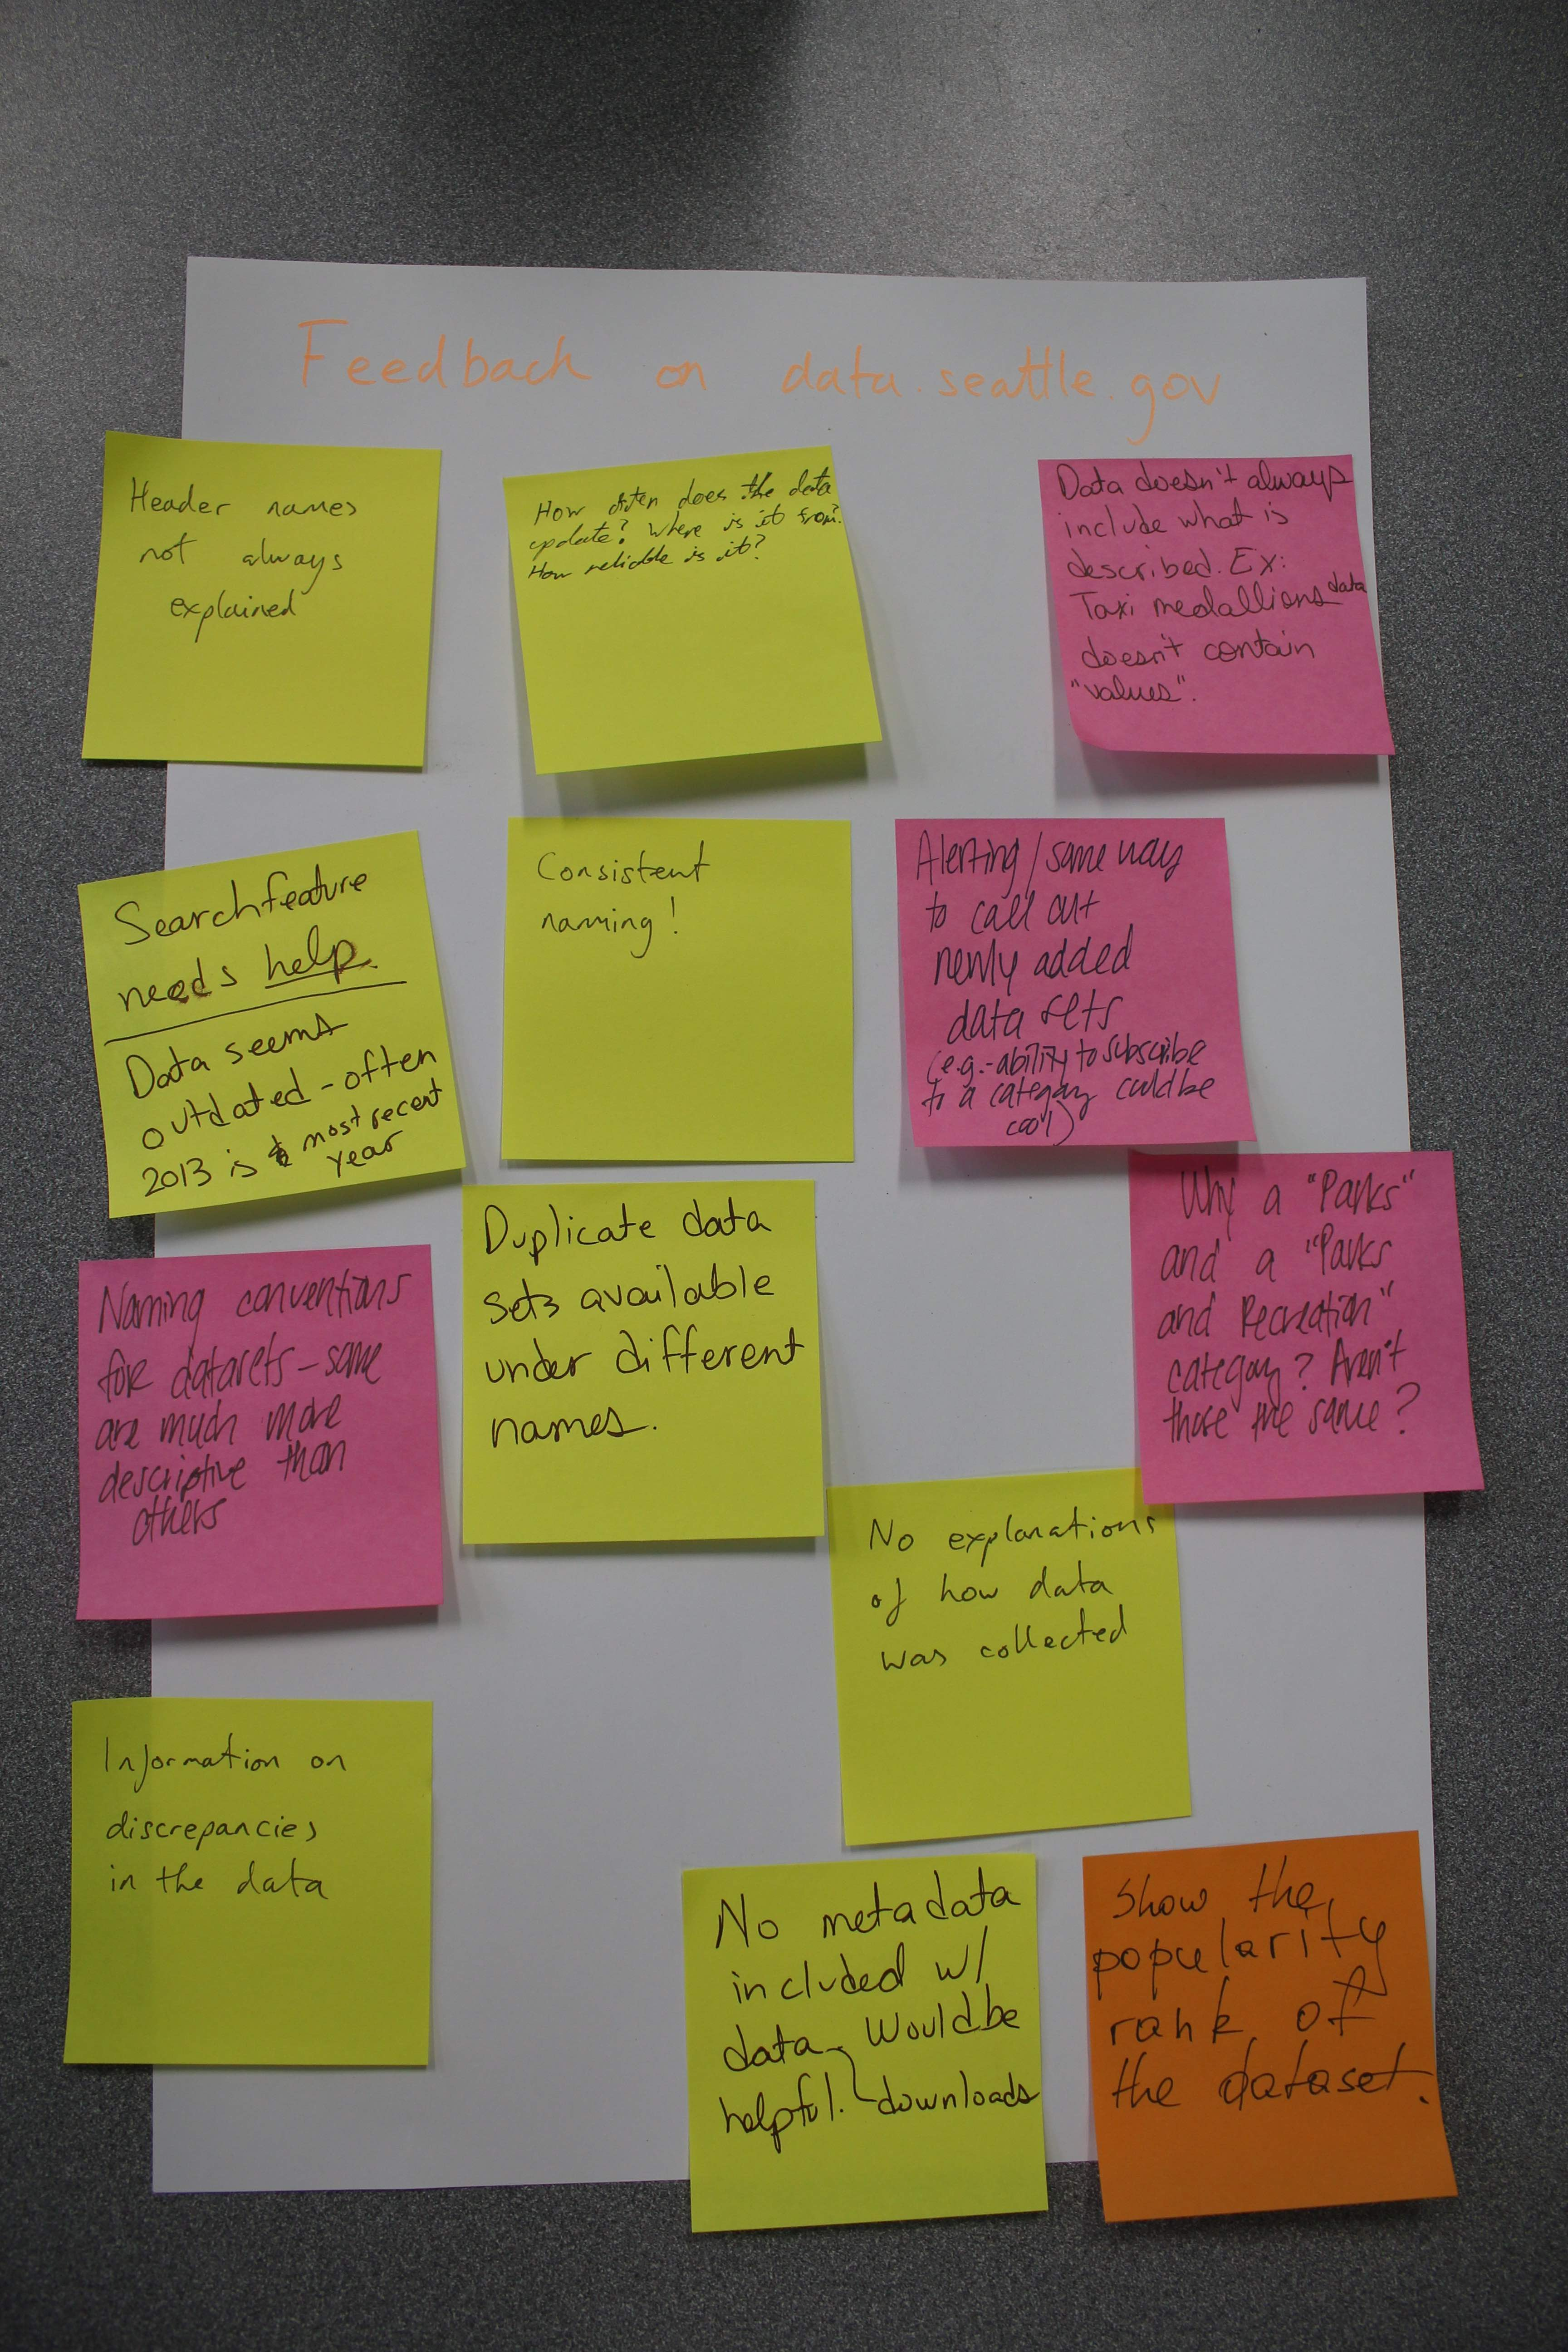 Feedback for the City of Seattle's open data programme